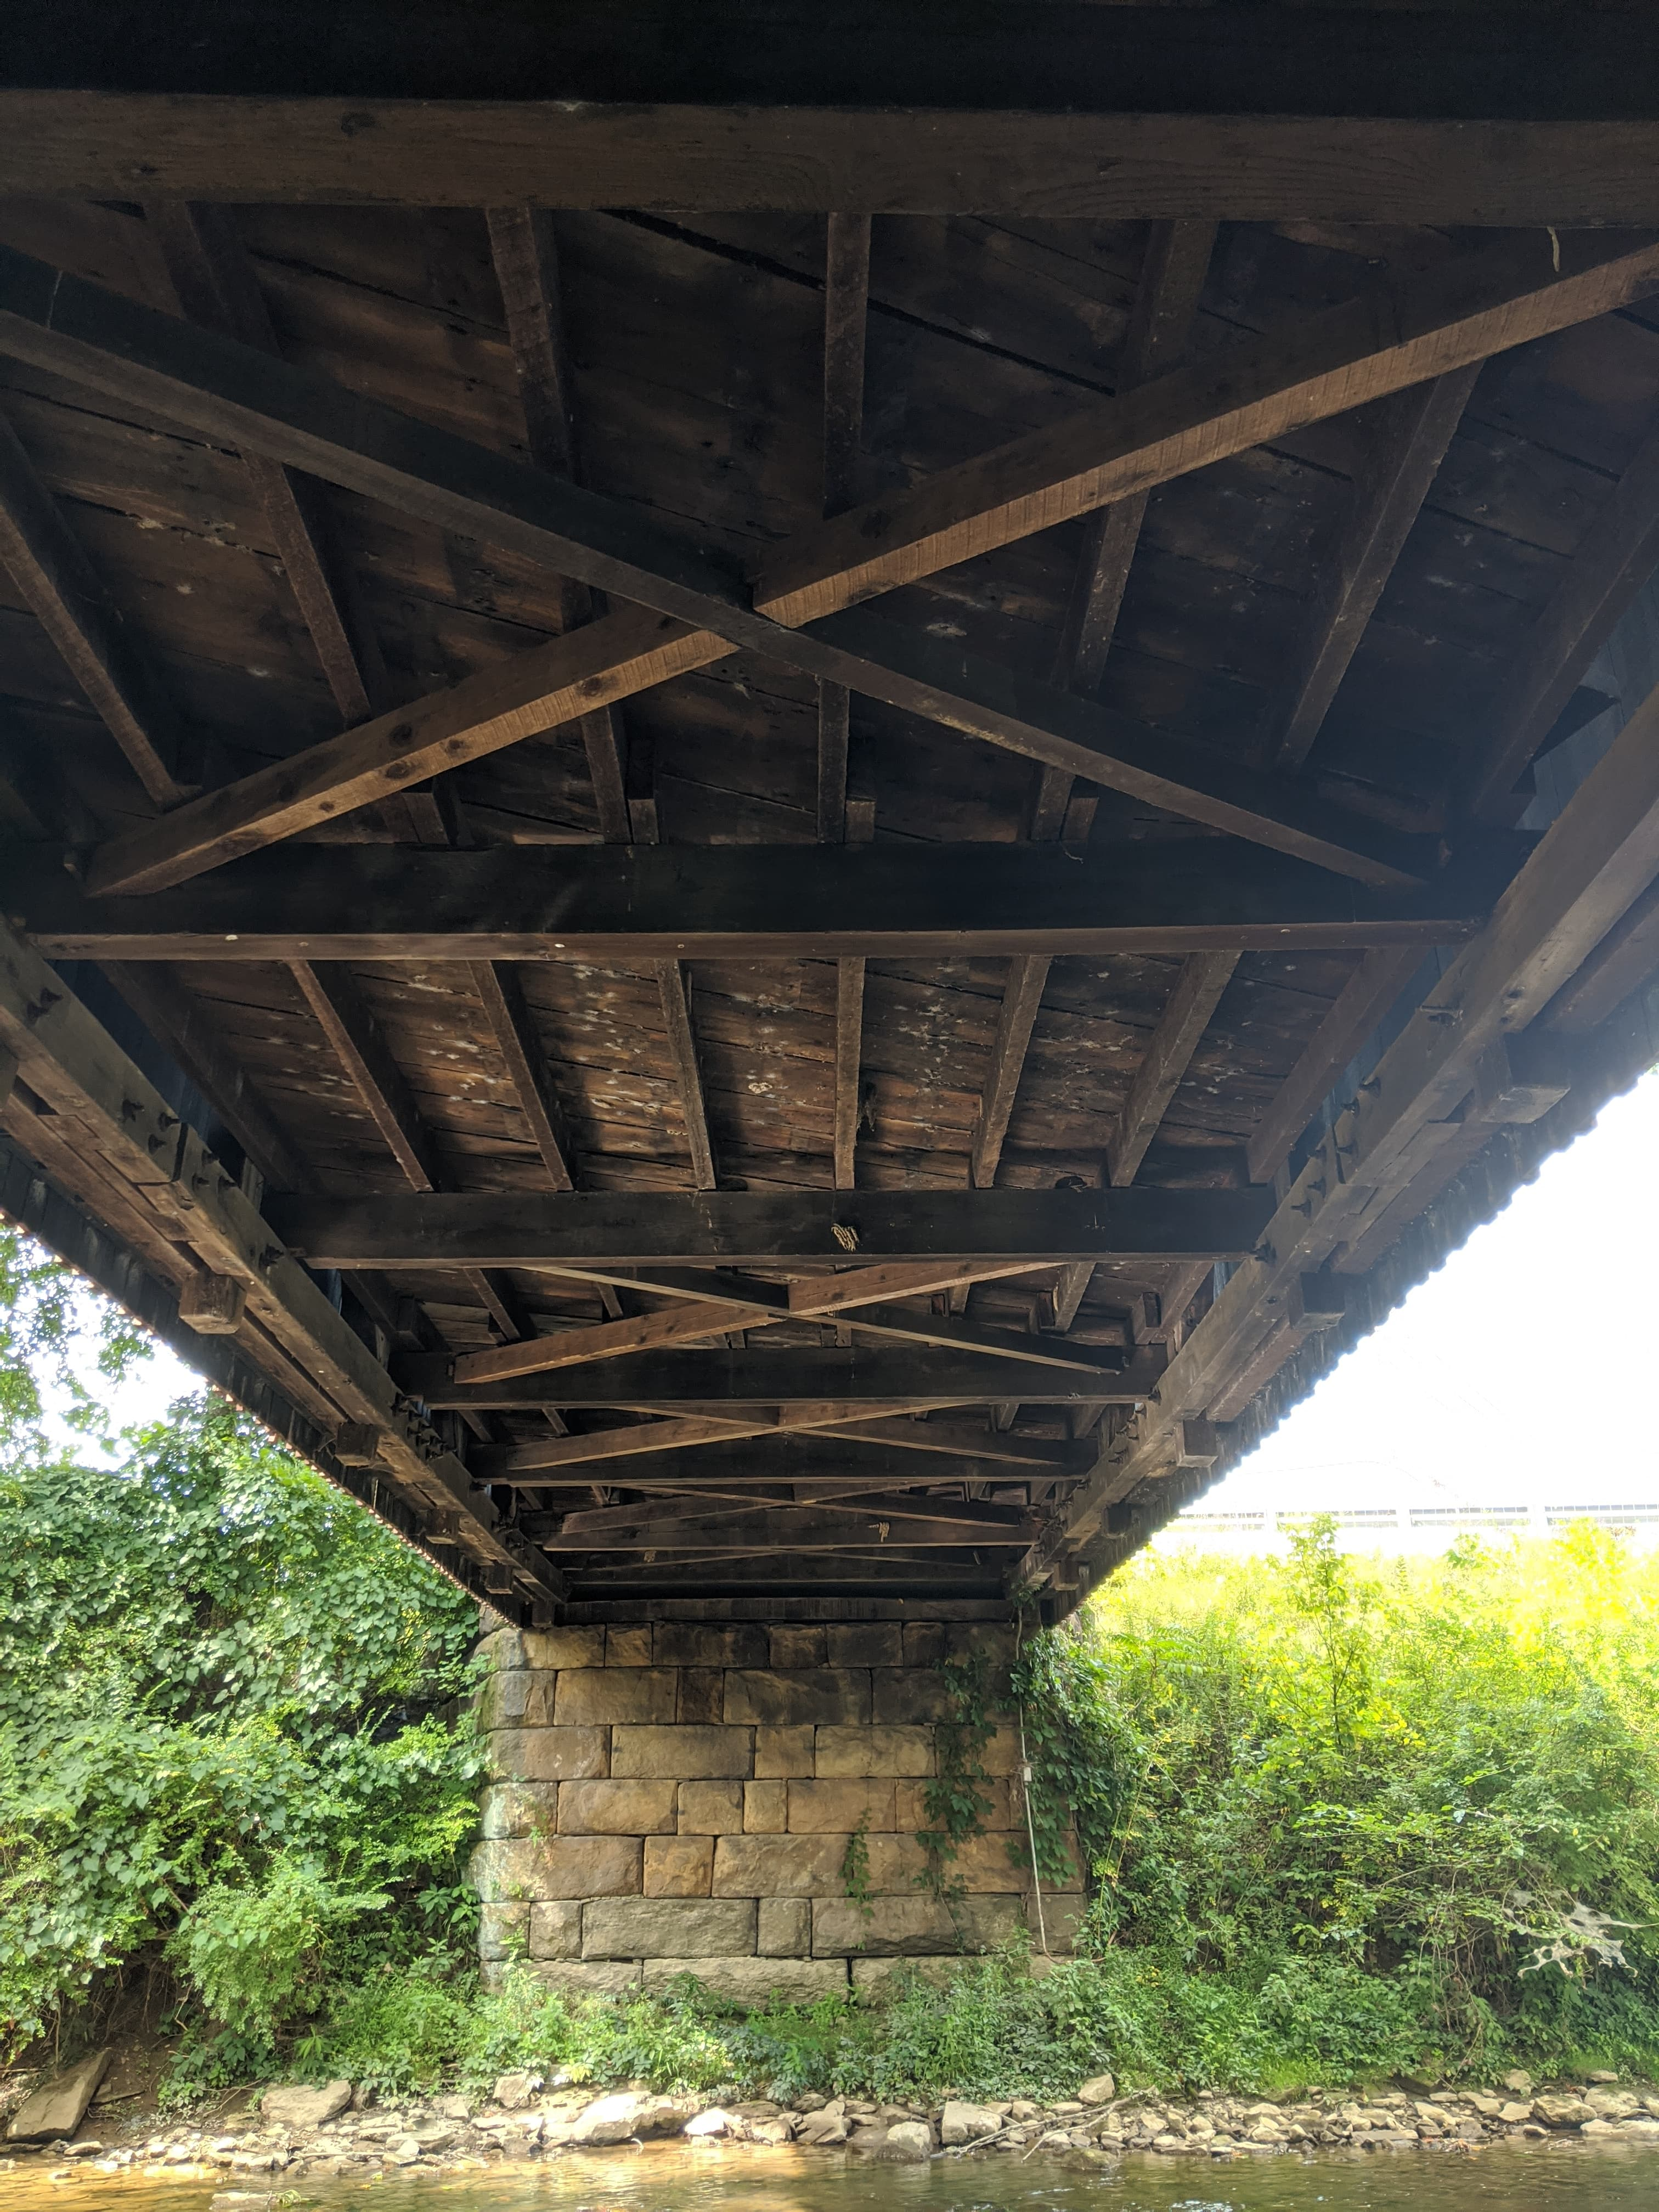 Underside view of the bridge. Note the lack of supporting arches